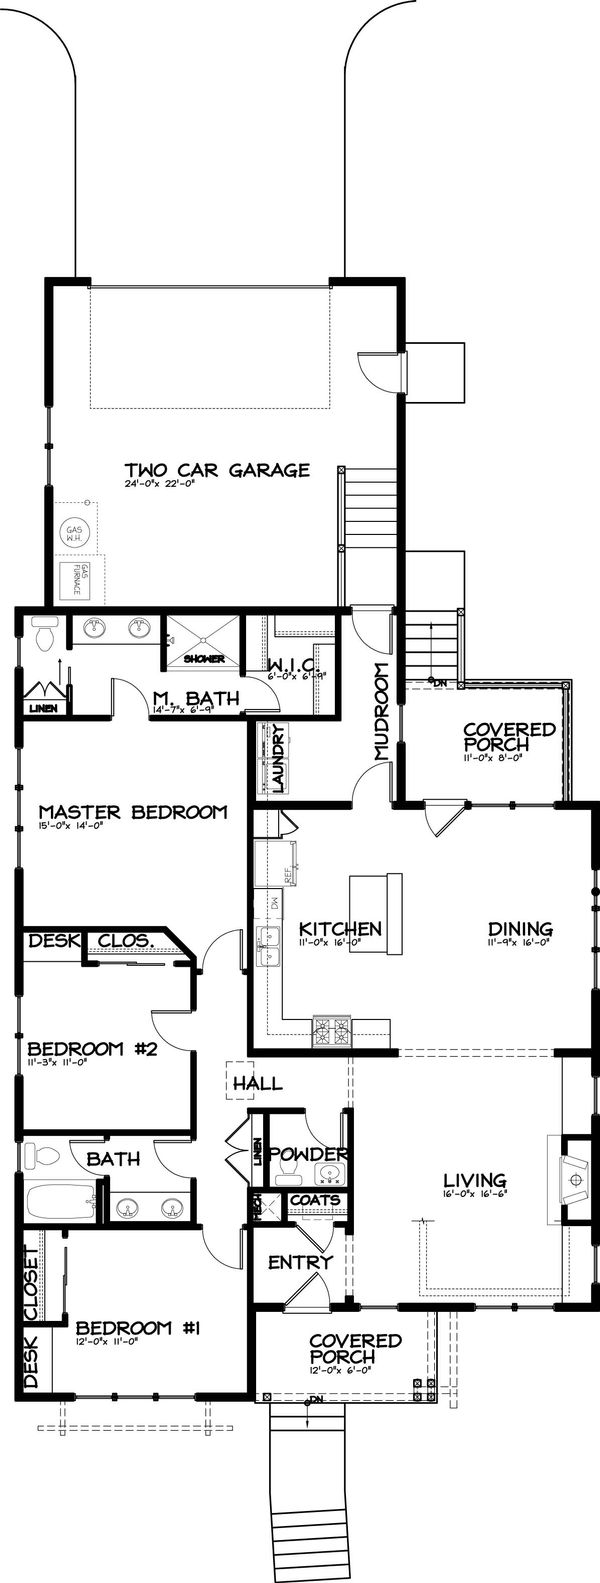 Bungalow Style House Plan - 3 Beds 2.5 Baths 1760 Sq/Ft Plan #434-1 Floor Plan - Main Floor Plan